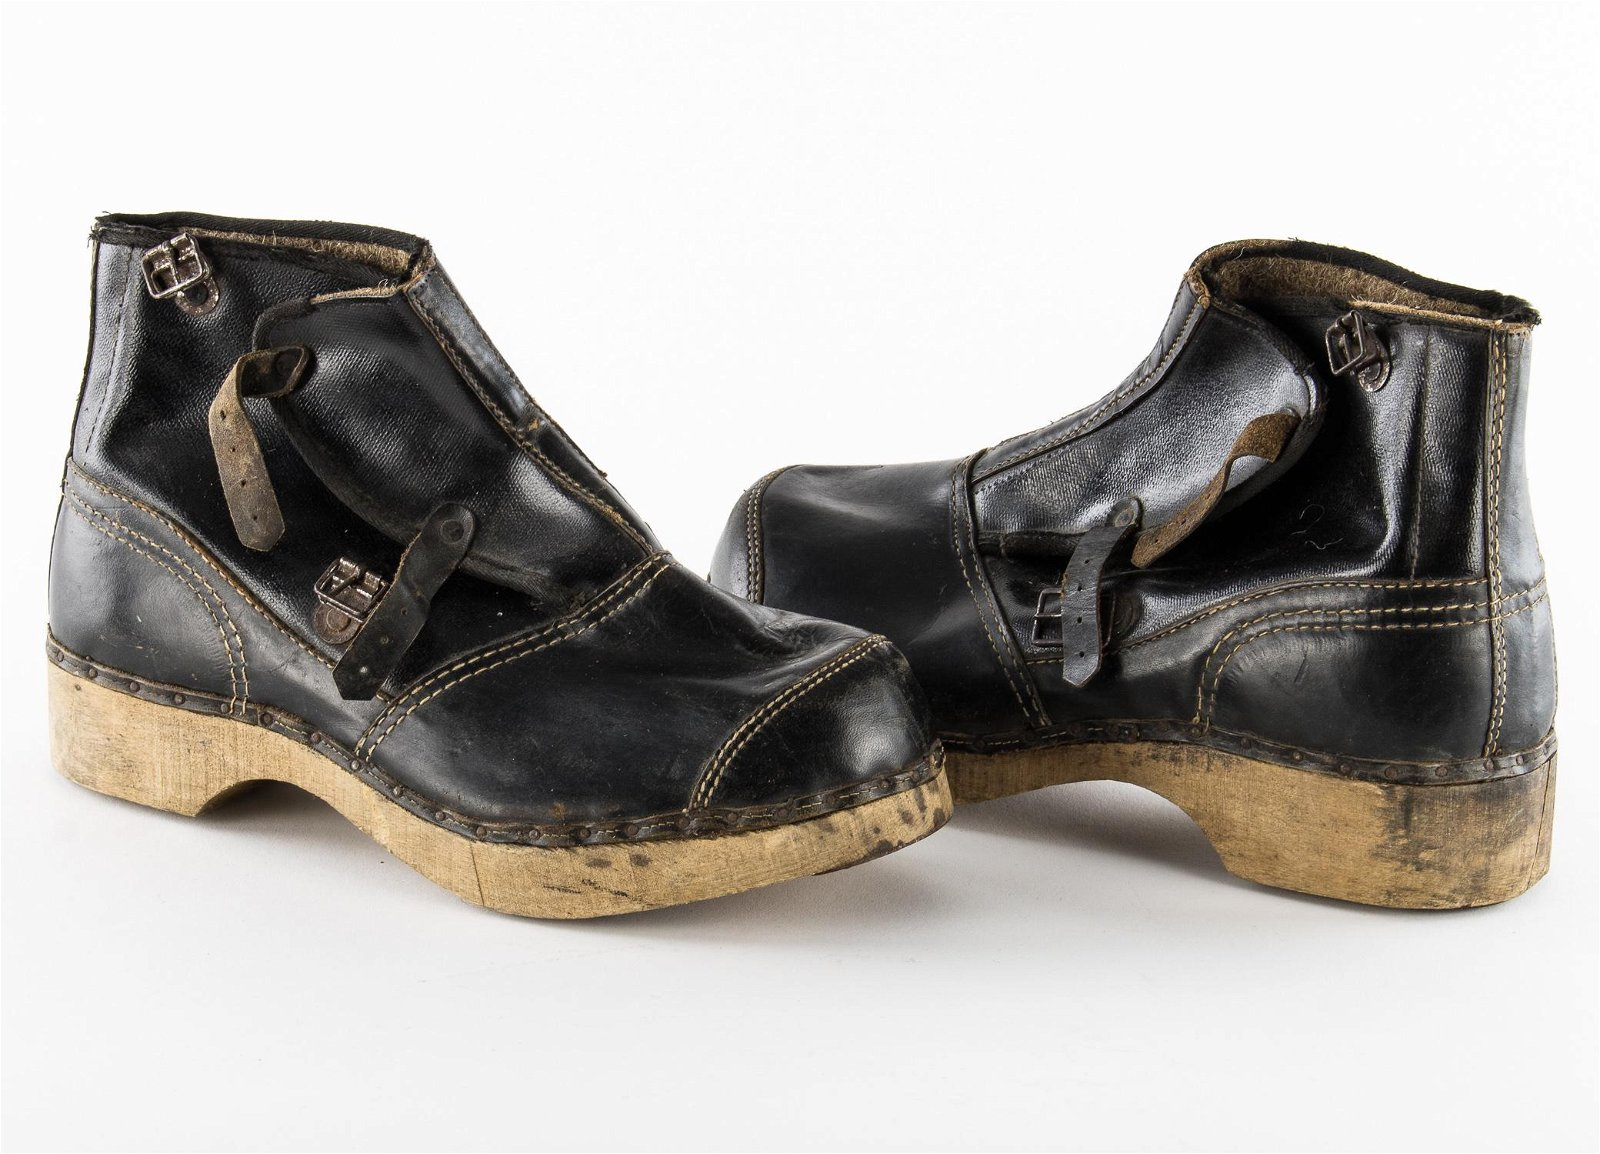 CONCENTRATION CAMP-ISSUE SHOES